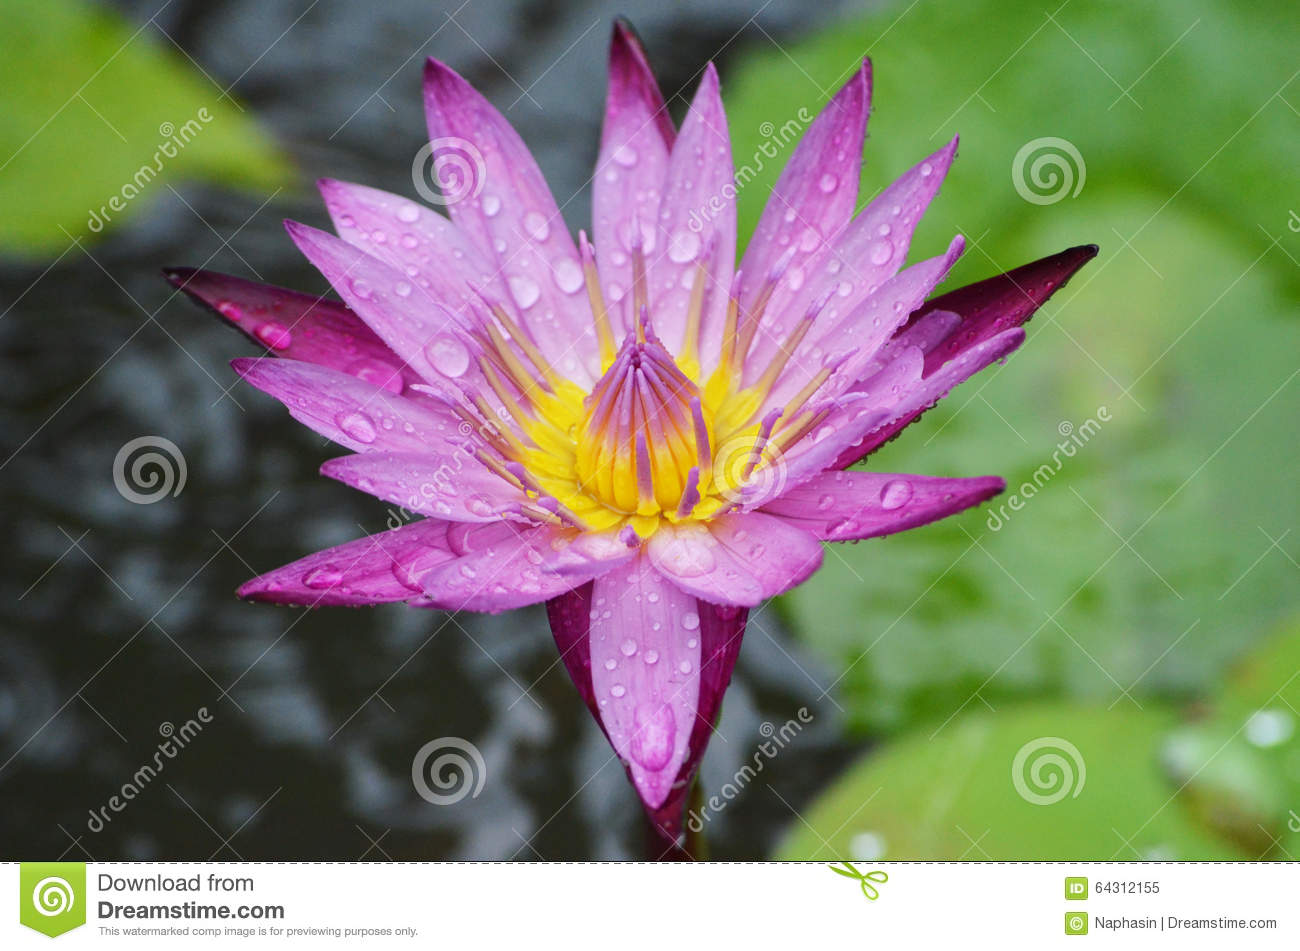 Lotus dhamma thailand stock image image of colourful 64312155 lotus flower thailand tree natural leaf chaingmai siam culture buddha buddhist izmirmasajfo